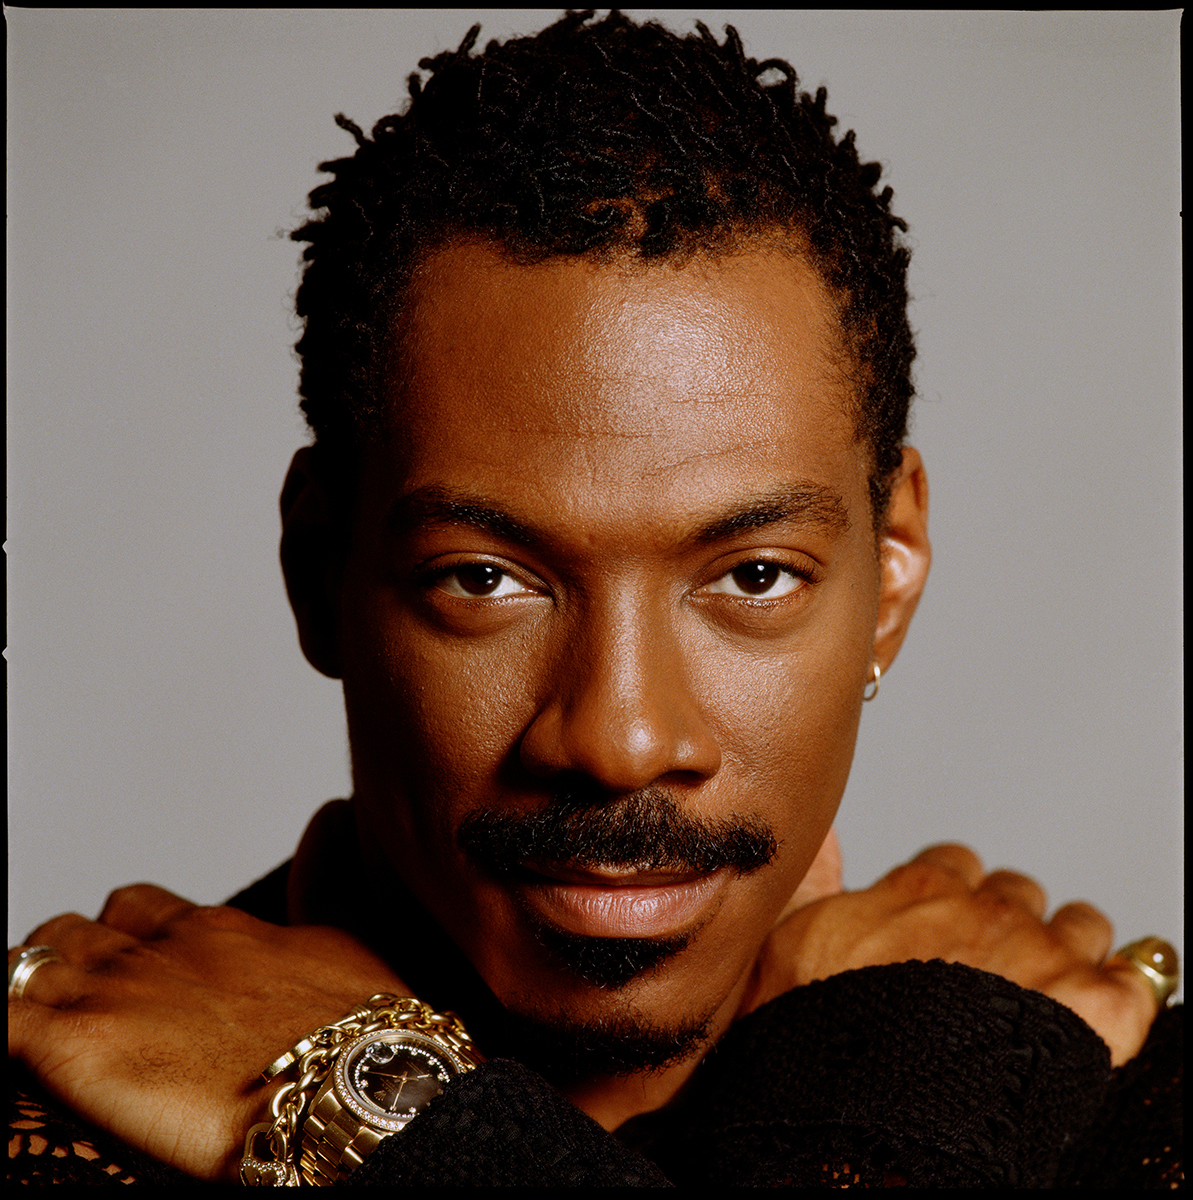 eddie murphy $ 85 million eddie murphy net worth: edward regan murphy is an american comedian, actor, writer, singer, and producermurphy was a regular cast member on saturday night live from 1980 to 1984he has worked as a stand-up comedian and was ranked #10 on comedy central's list of the 100 greatest stand-ups of all time.